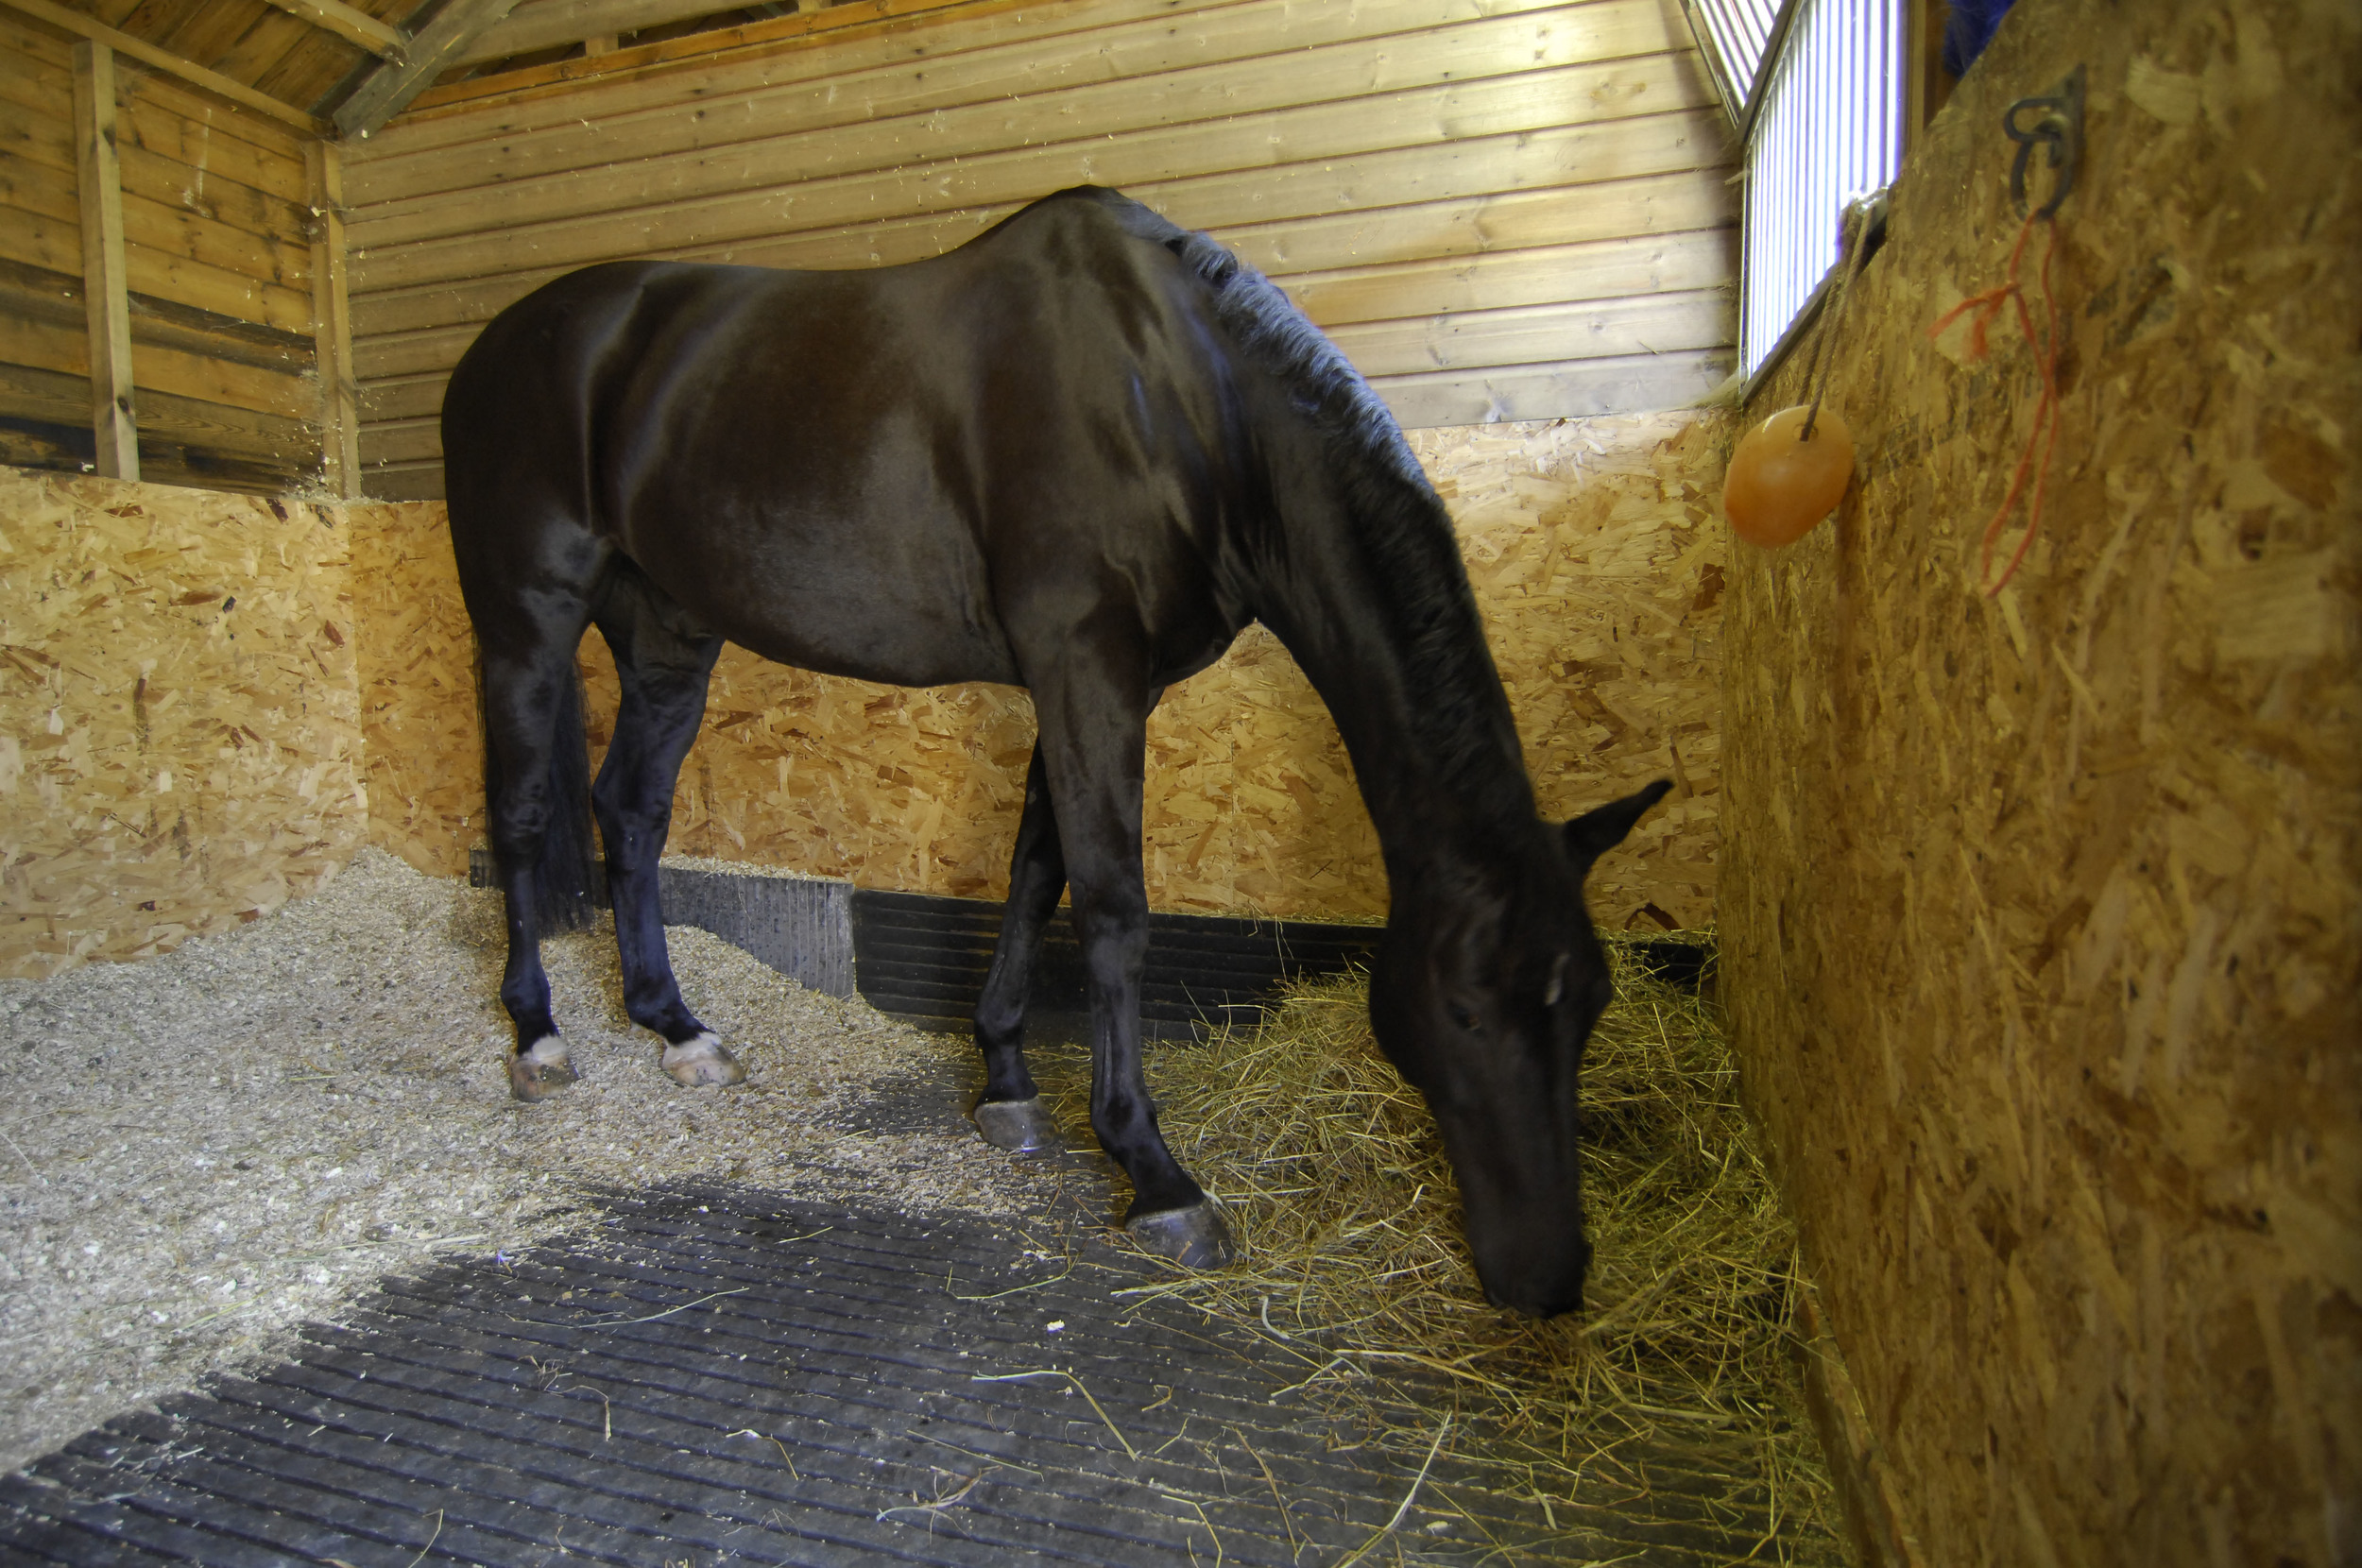 Forage should form the largest part of your horse or pony's diet